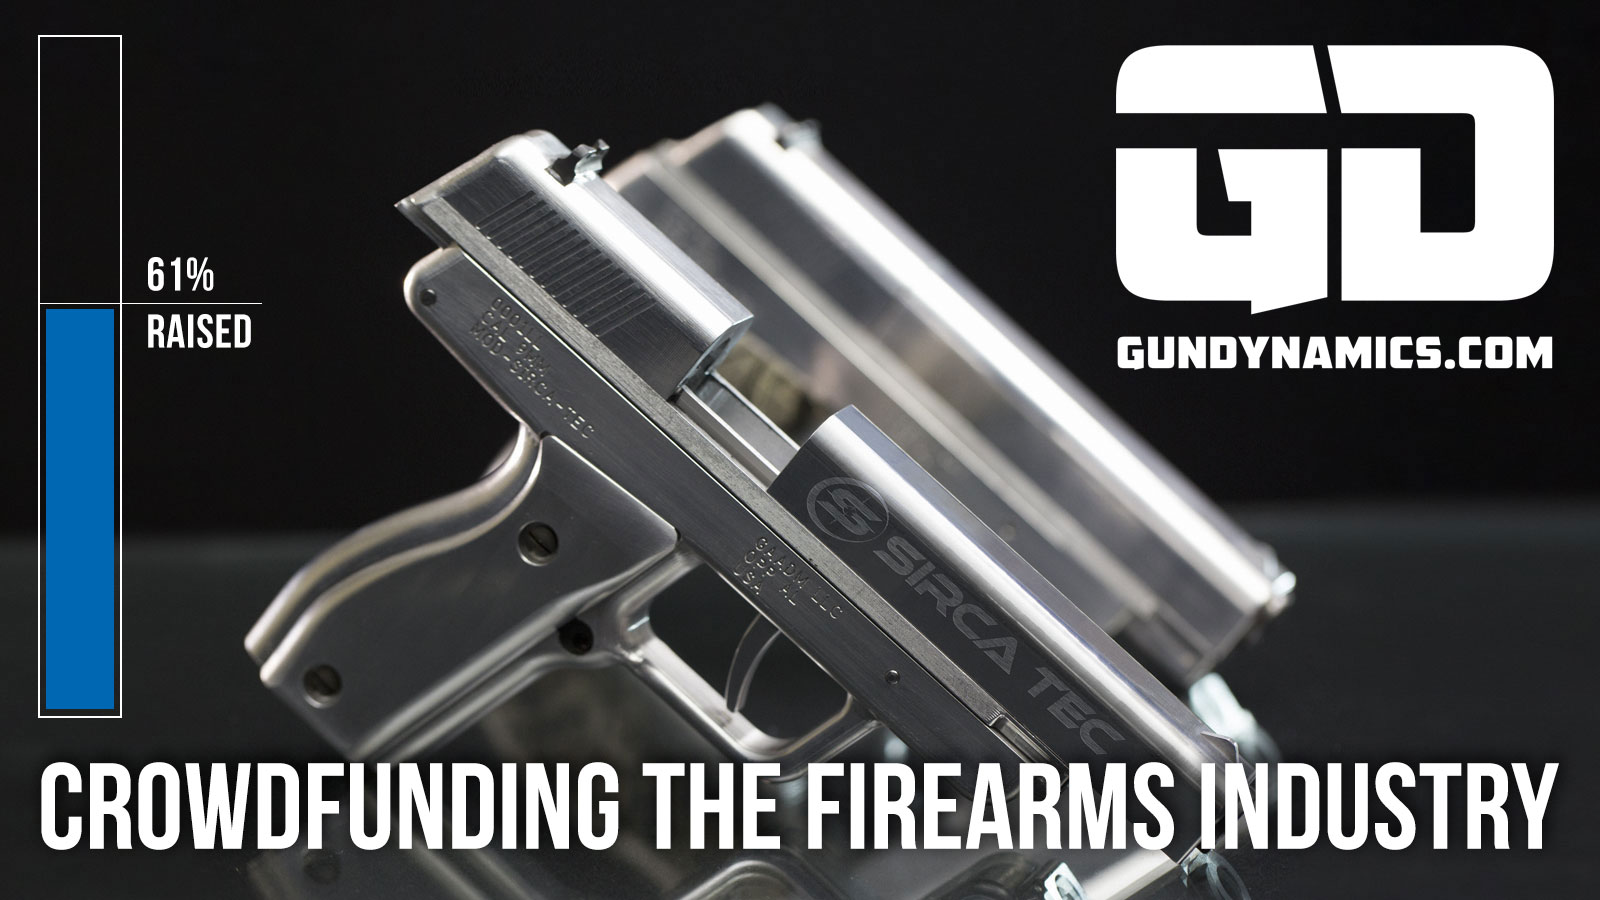 RETURN FIRE: FIRST-EVER CROWDFUNDING PLATFORM FOR FIREARMS AND FIREARM PRODUCTS